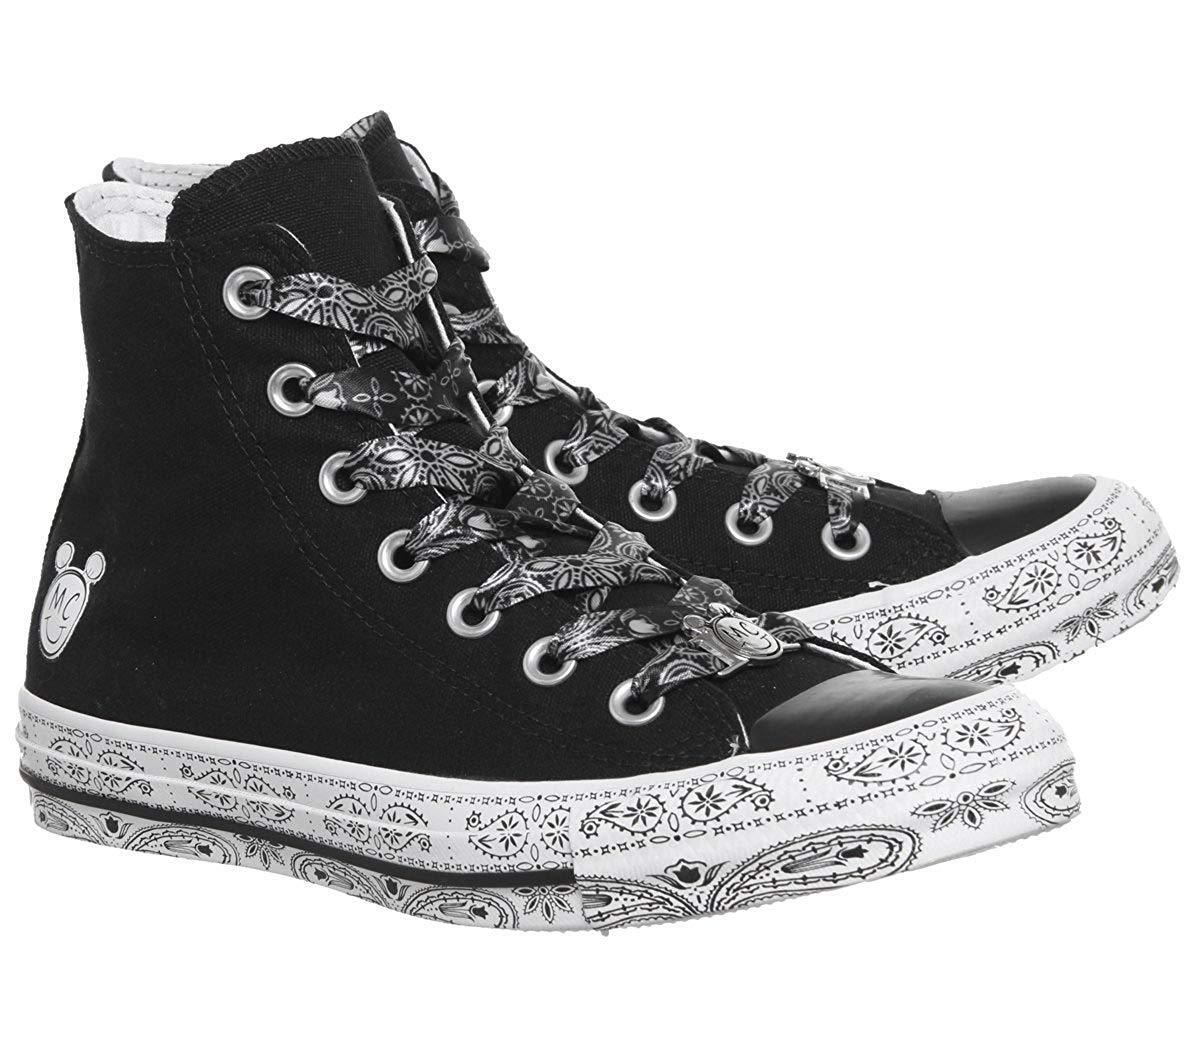 preocuparse Sabueso Interesar  Women's Converse x Miley Cyrus Chuck Taylor AS Hi, 162234C Multi Sizes  Black//Wh for sale online